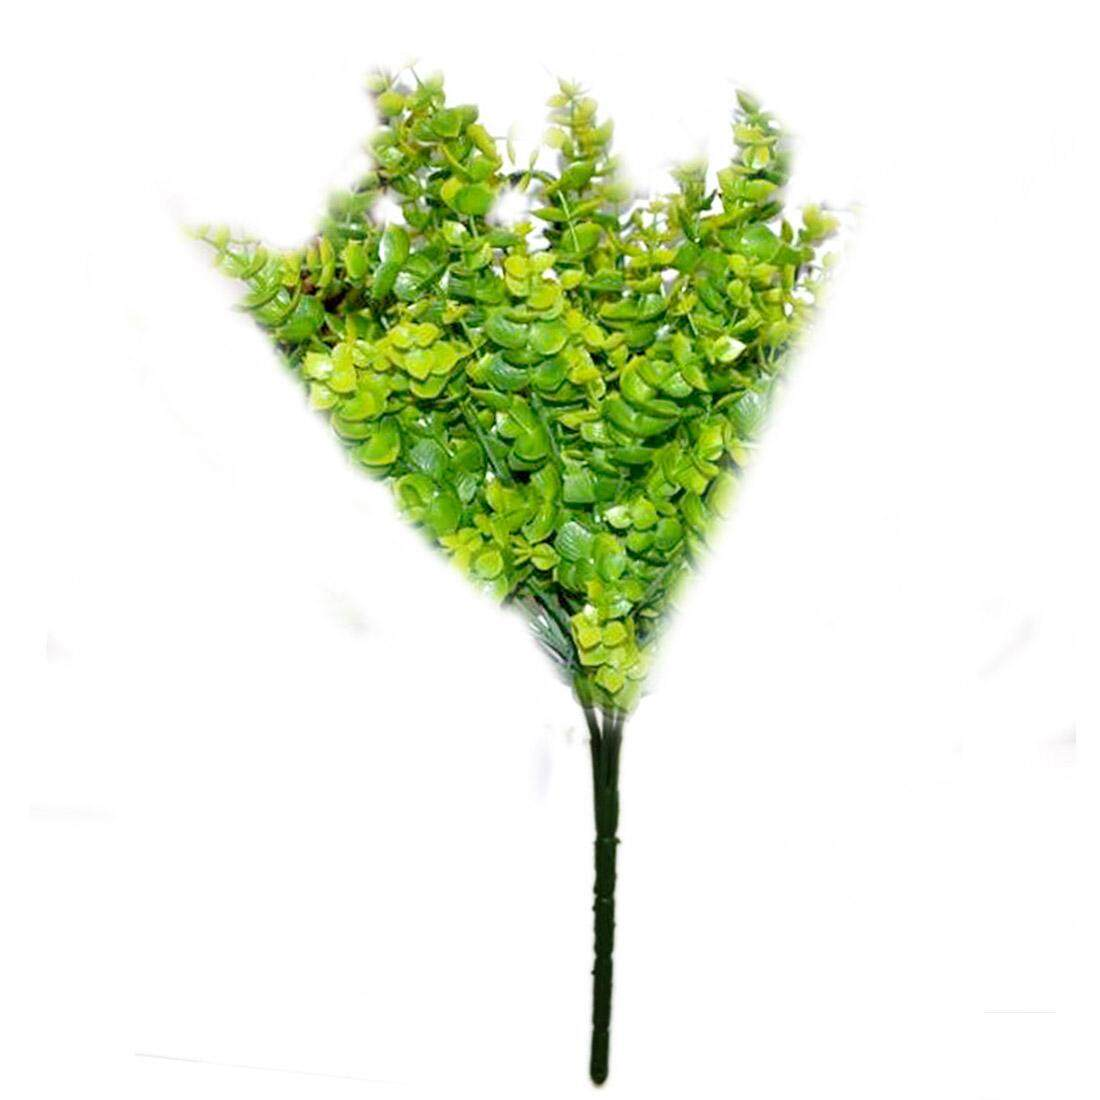 Spring Decoration 1 Bunch 7-Branches Artificial Eucalyptus Grass Green Leaves Plant For Home Office Decoration Fake Flower - intl